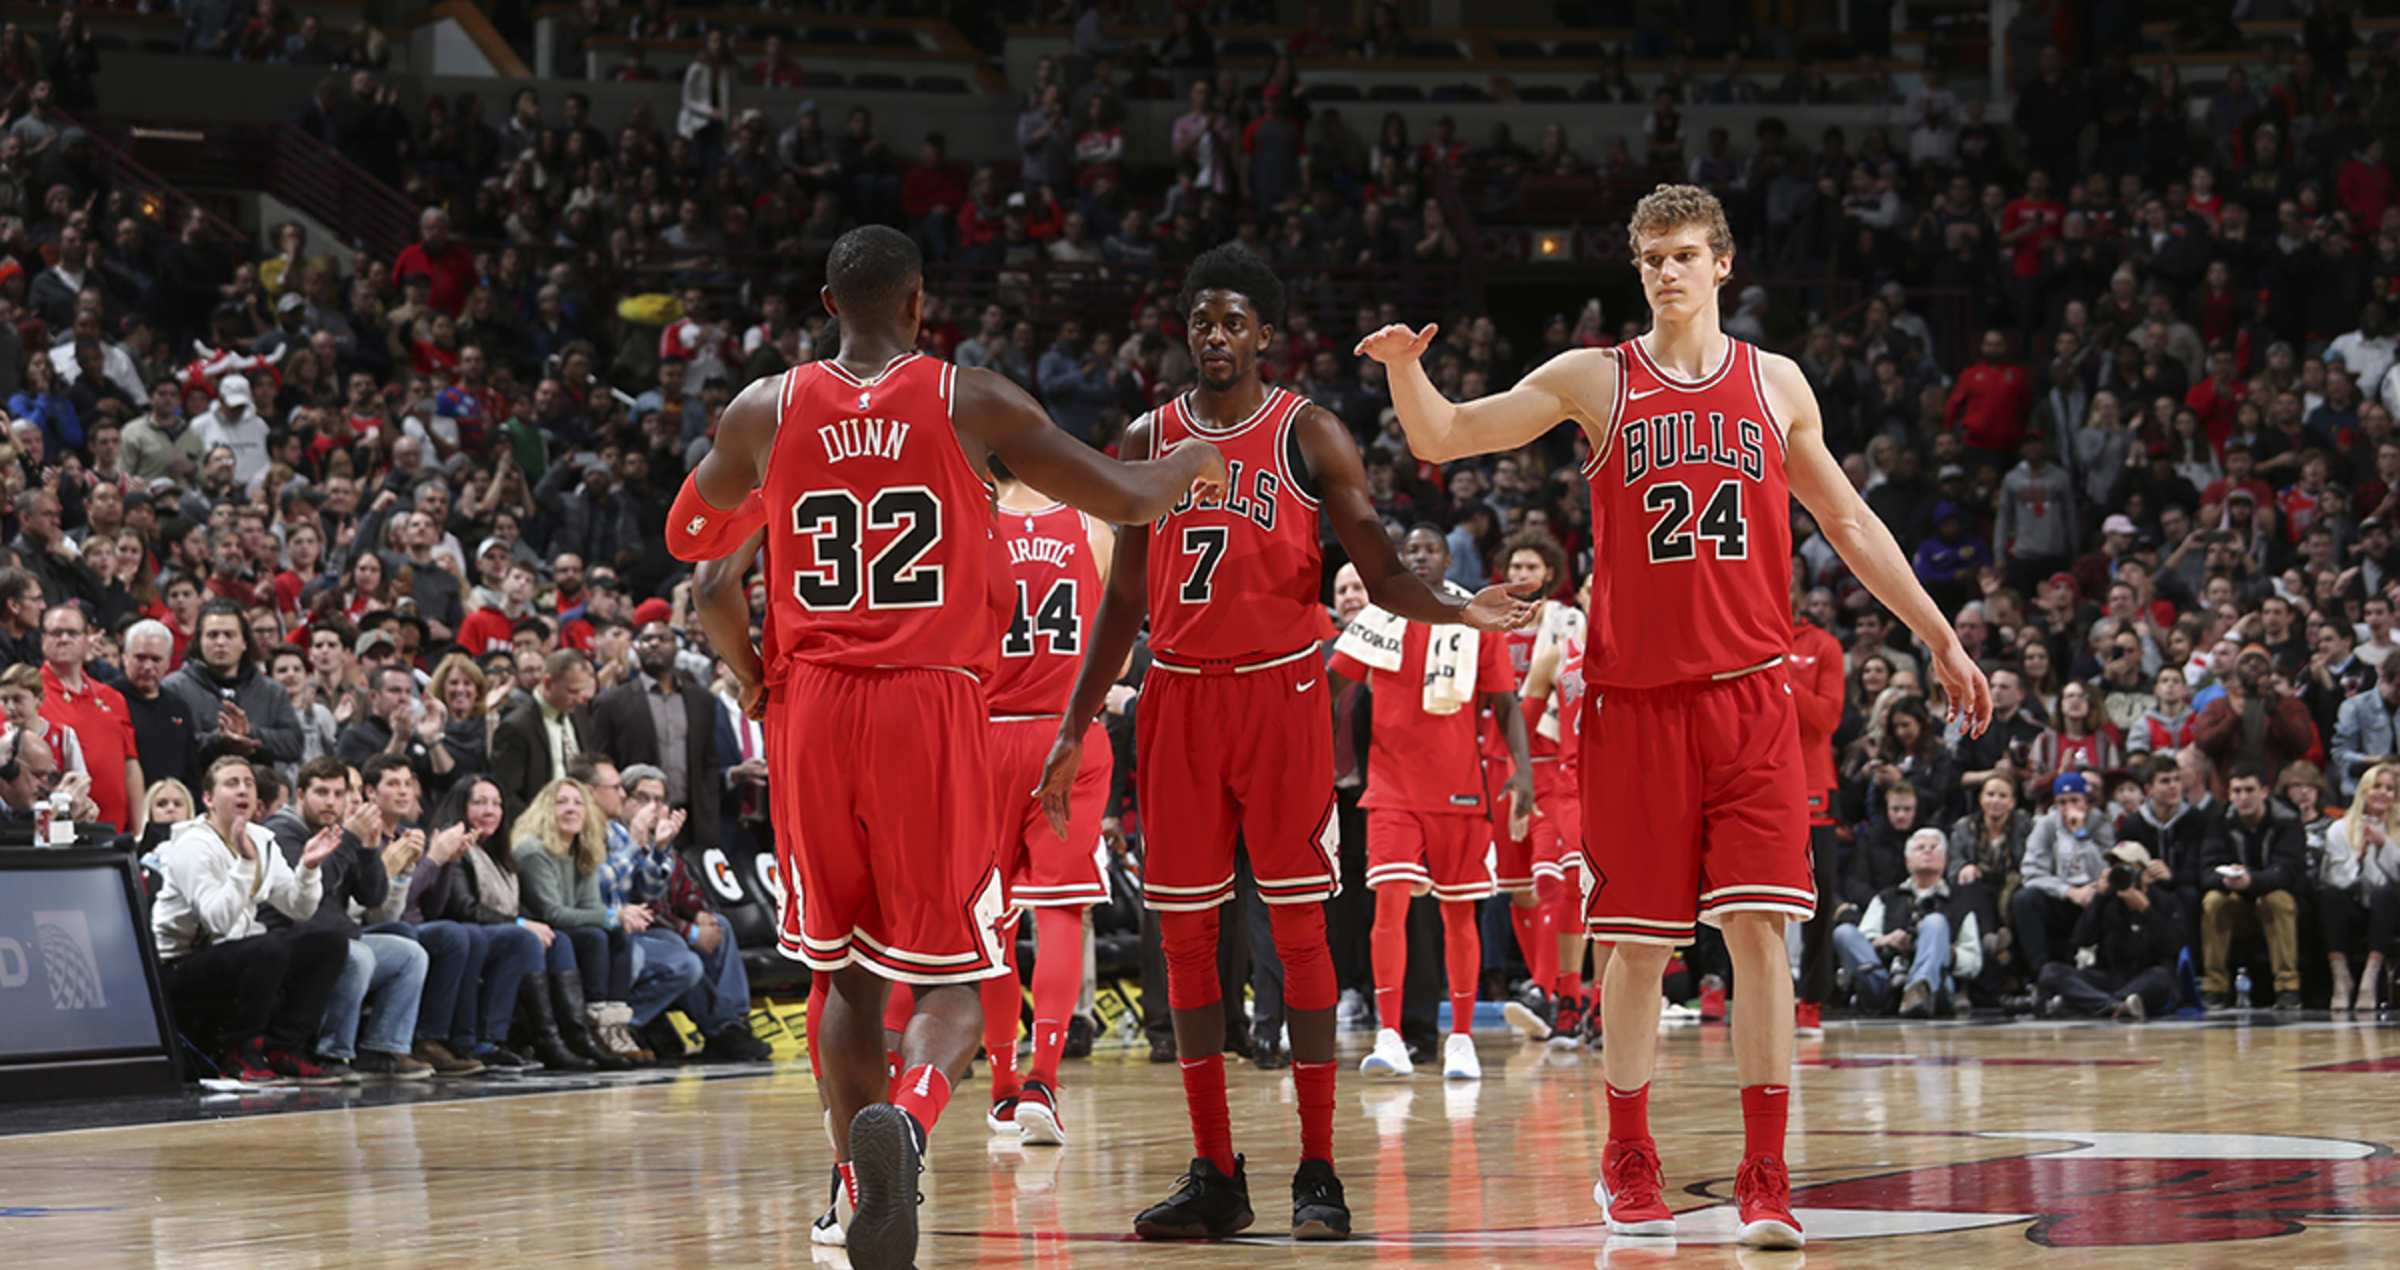 dunn and lauri high five